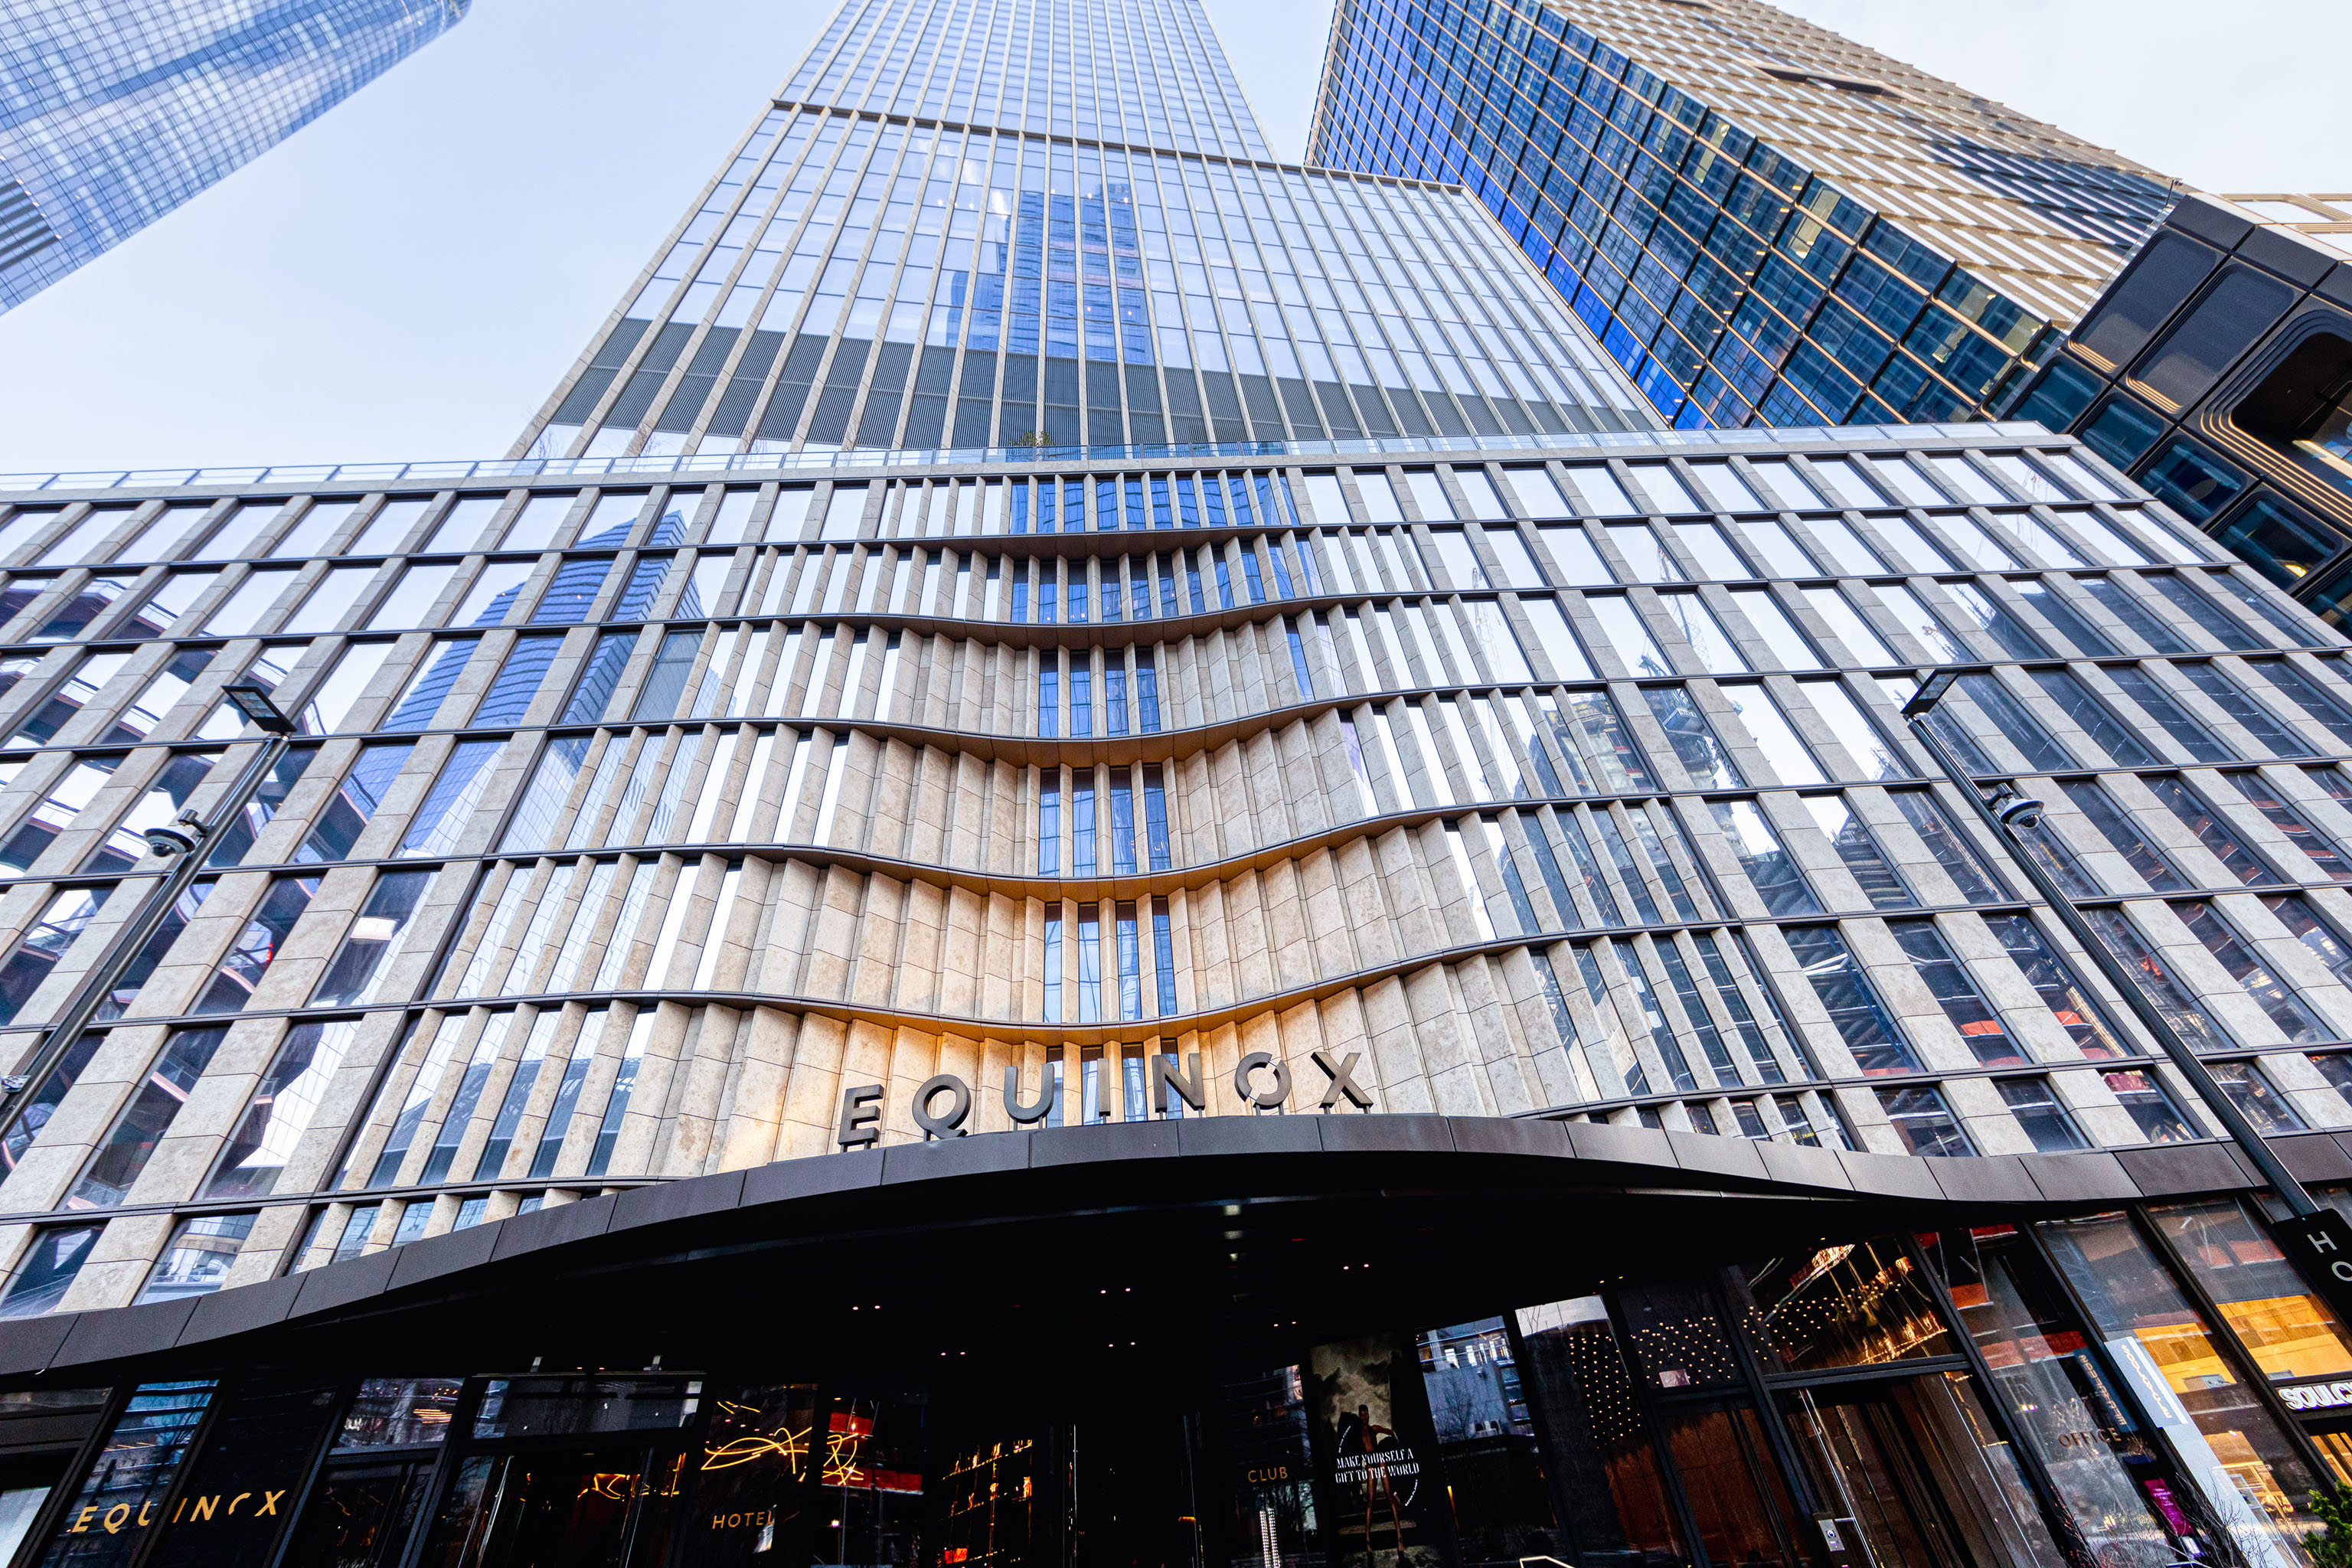 The exterior of the entrance to Equinox's Hudson Yards club.